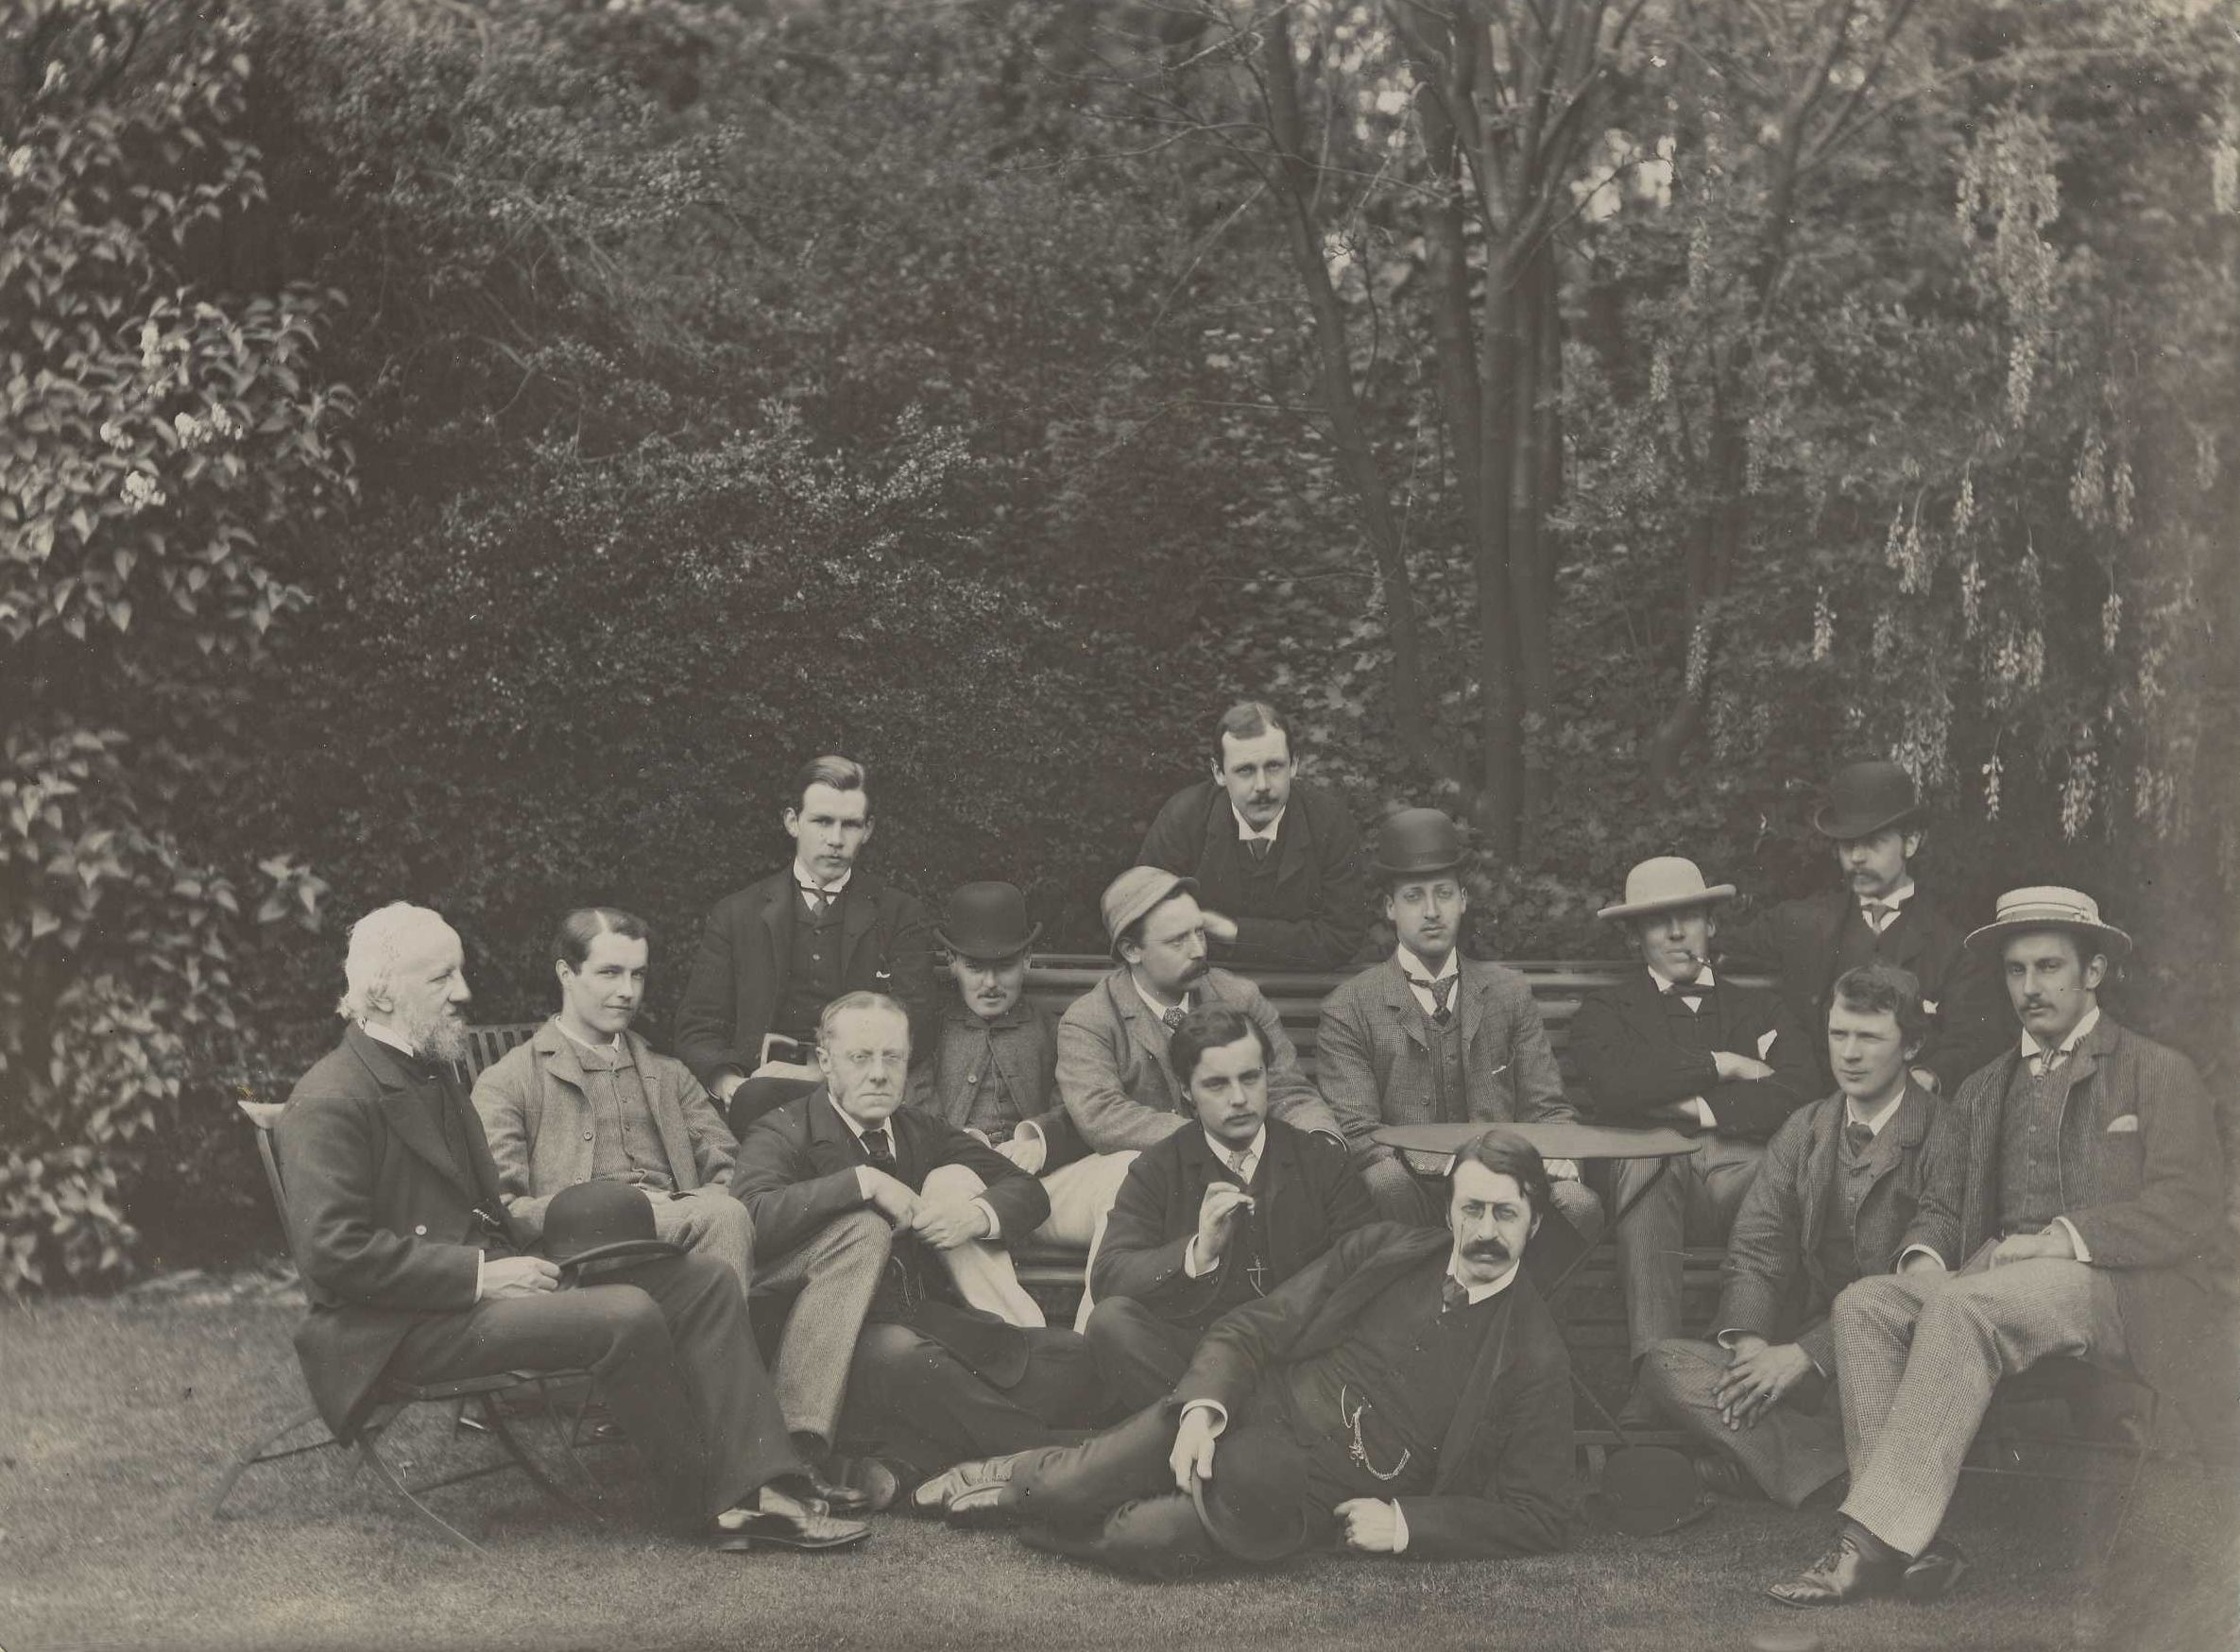 Apostles group photo, c.1883. J.K. Stephen (KC1878) is wearing a hat and smoking a pipe. [KCAS/39/4/1]